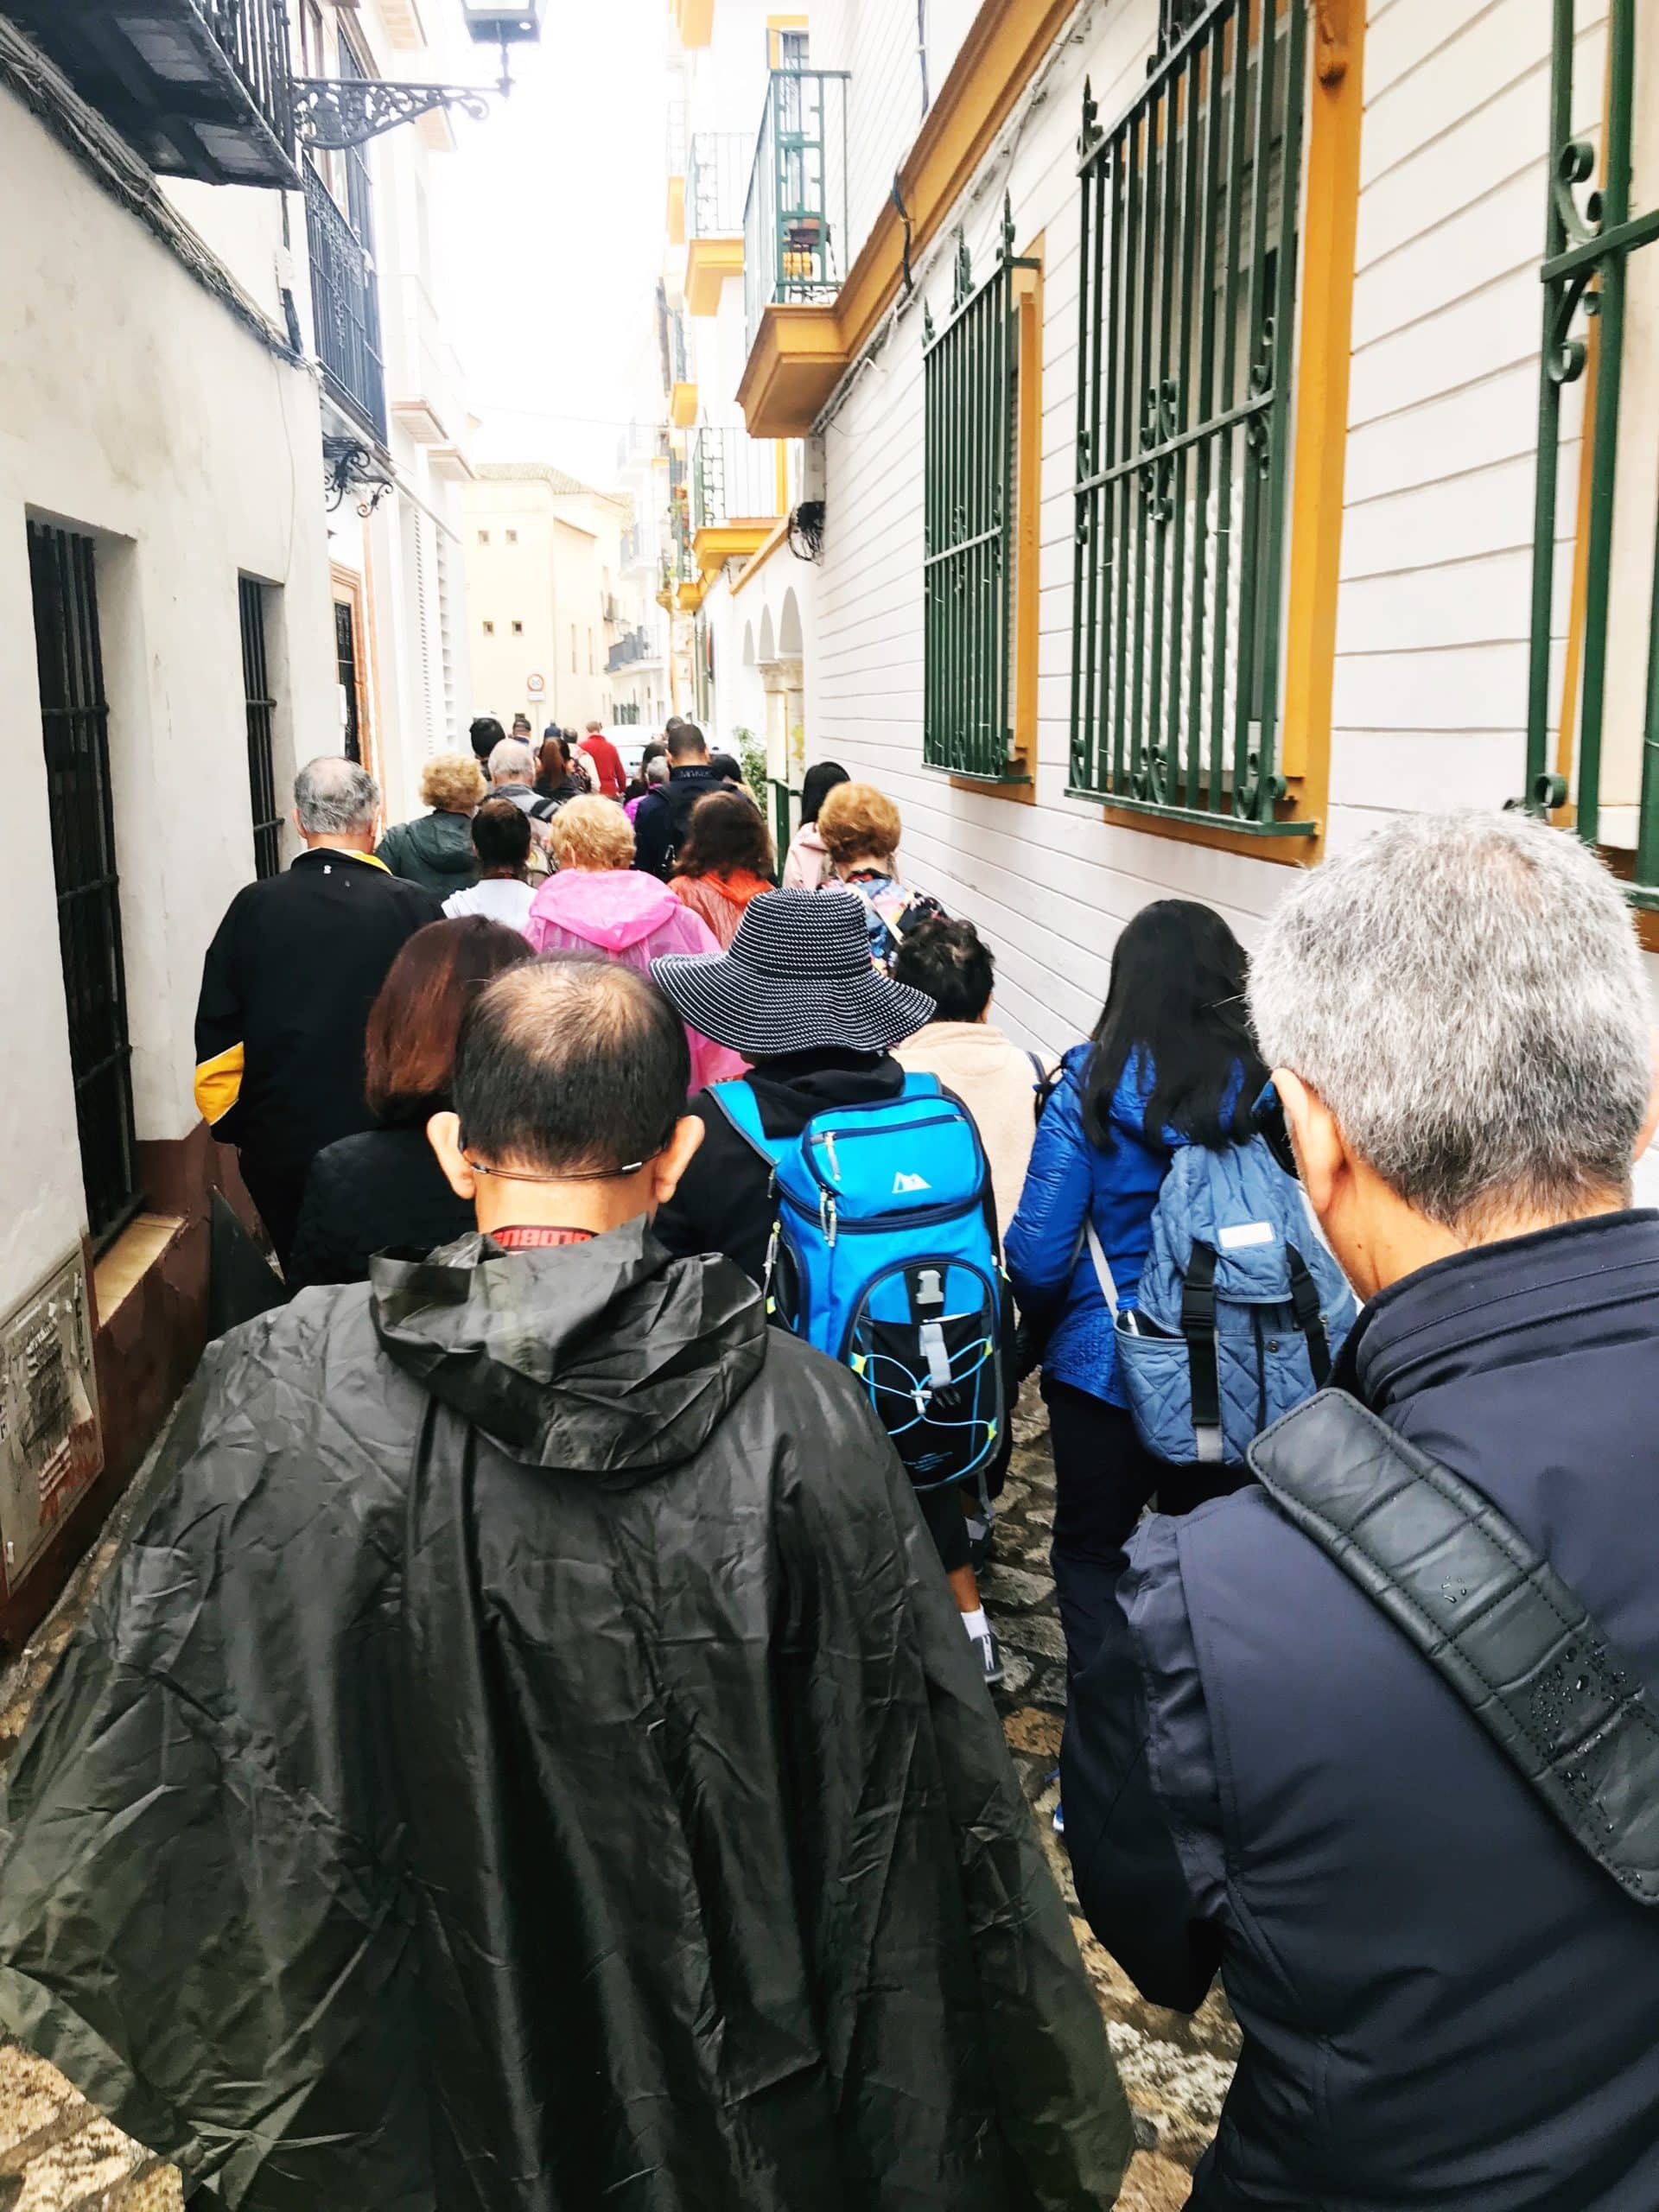 crowd of people on a narrow street